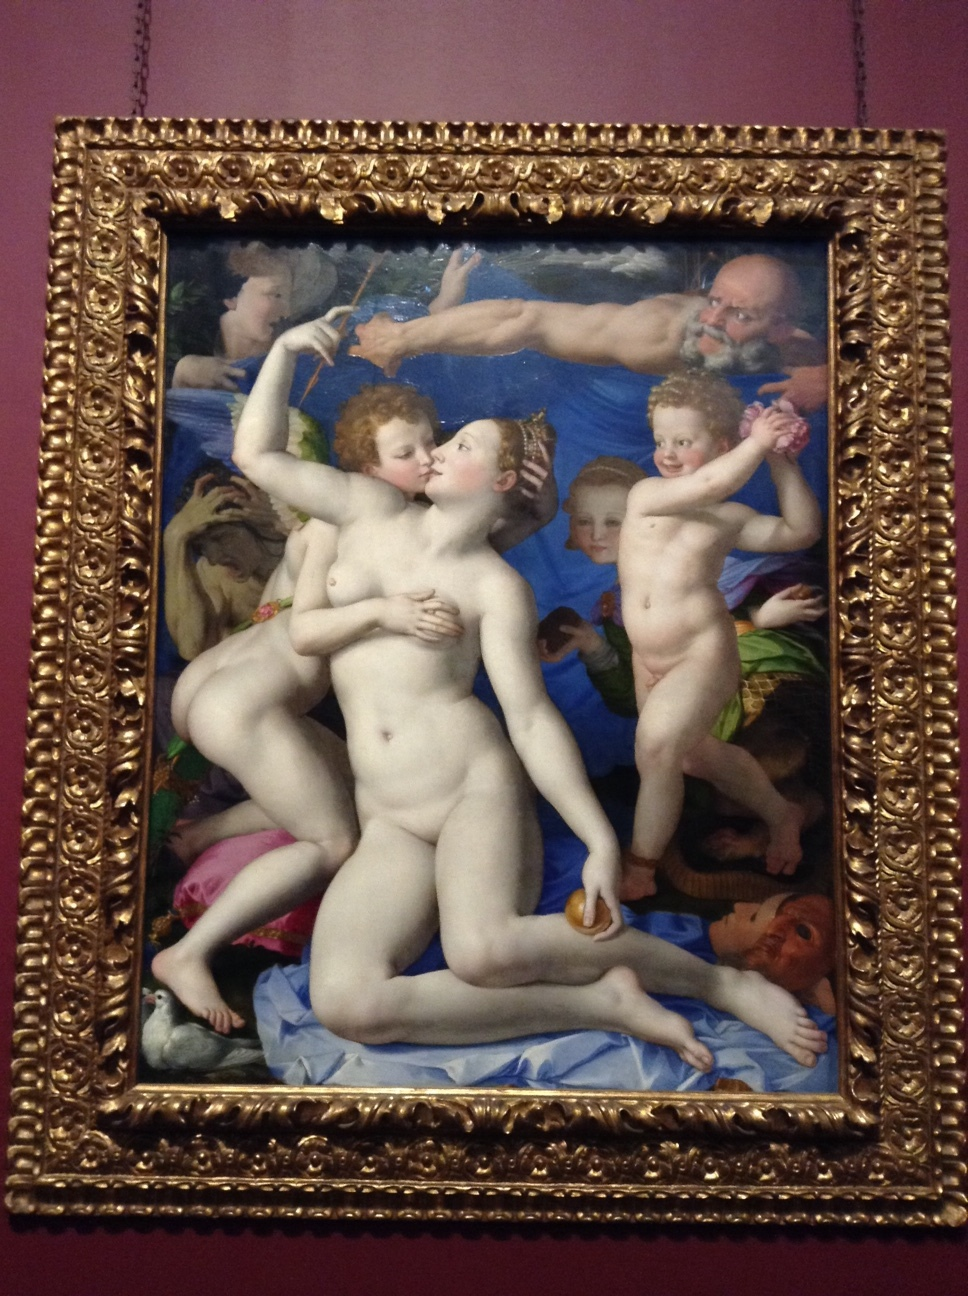 Bronzino's Venus and Cupid. Delish.